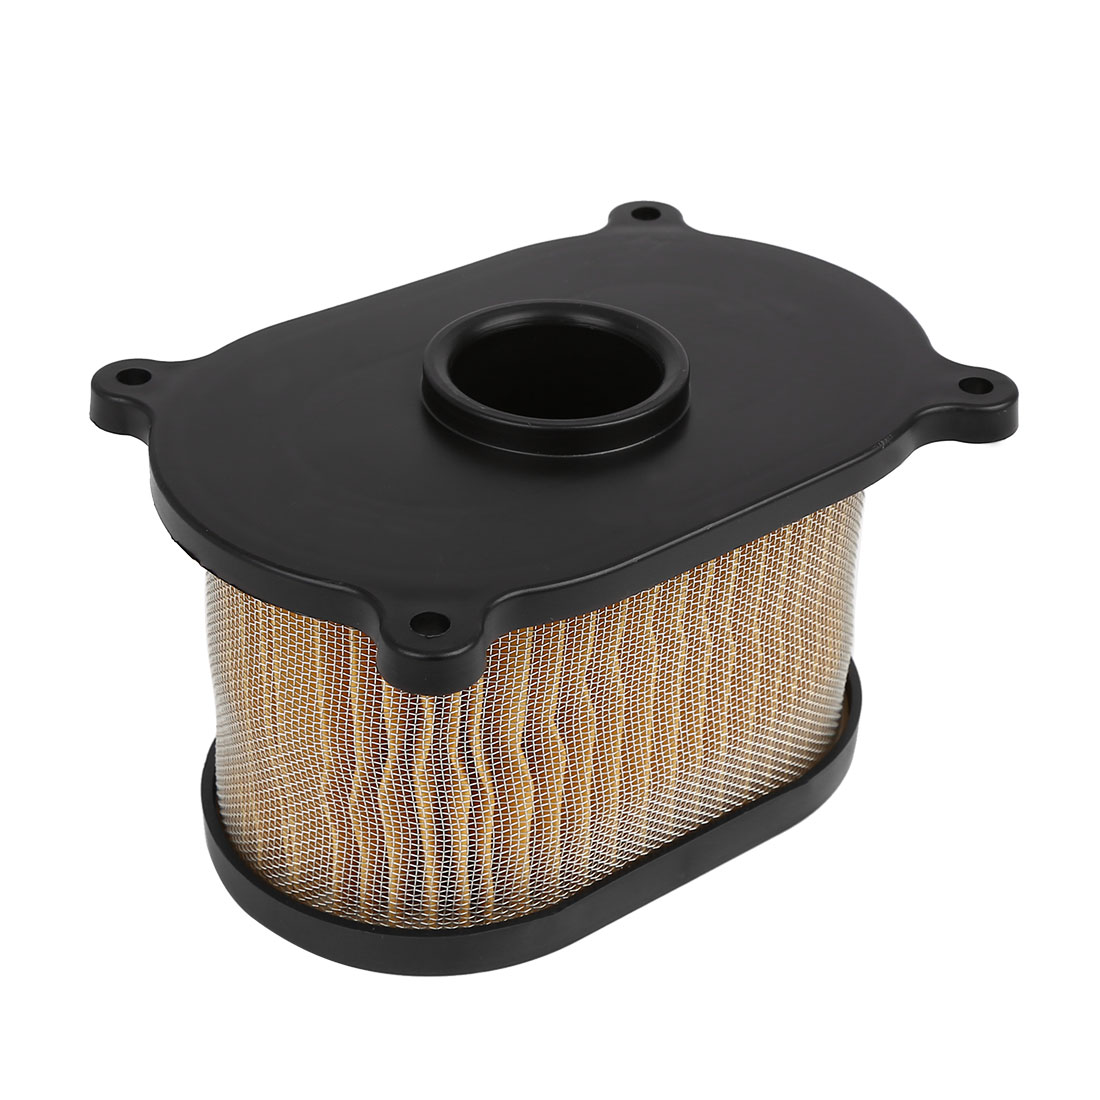 650CC Motorcycle Air Filter Intake Element Replacement for Suzuki SV650 SV650S